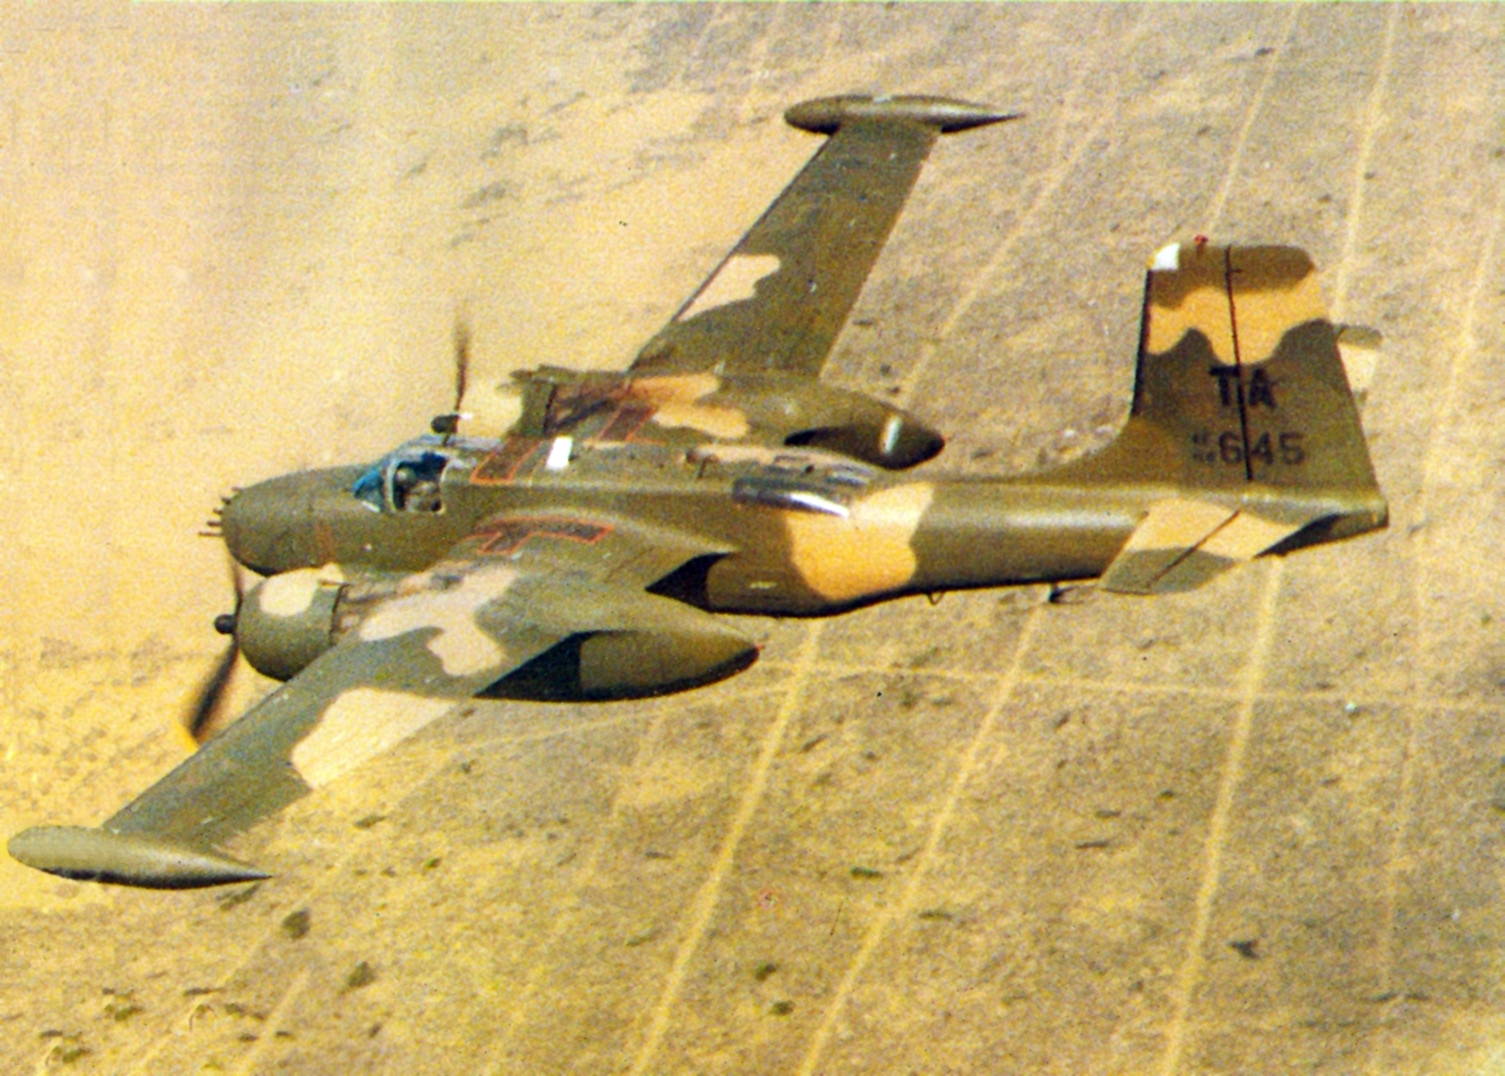 An A-26 Invader of the 609th Special Operations Squadron flying near Nakhon Phanom Royal Thai Air Base in 1969. ( Image via Wikipedia)